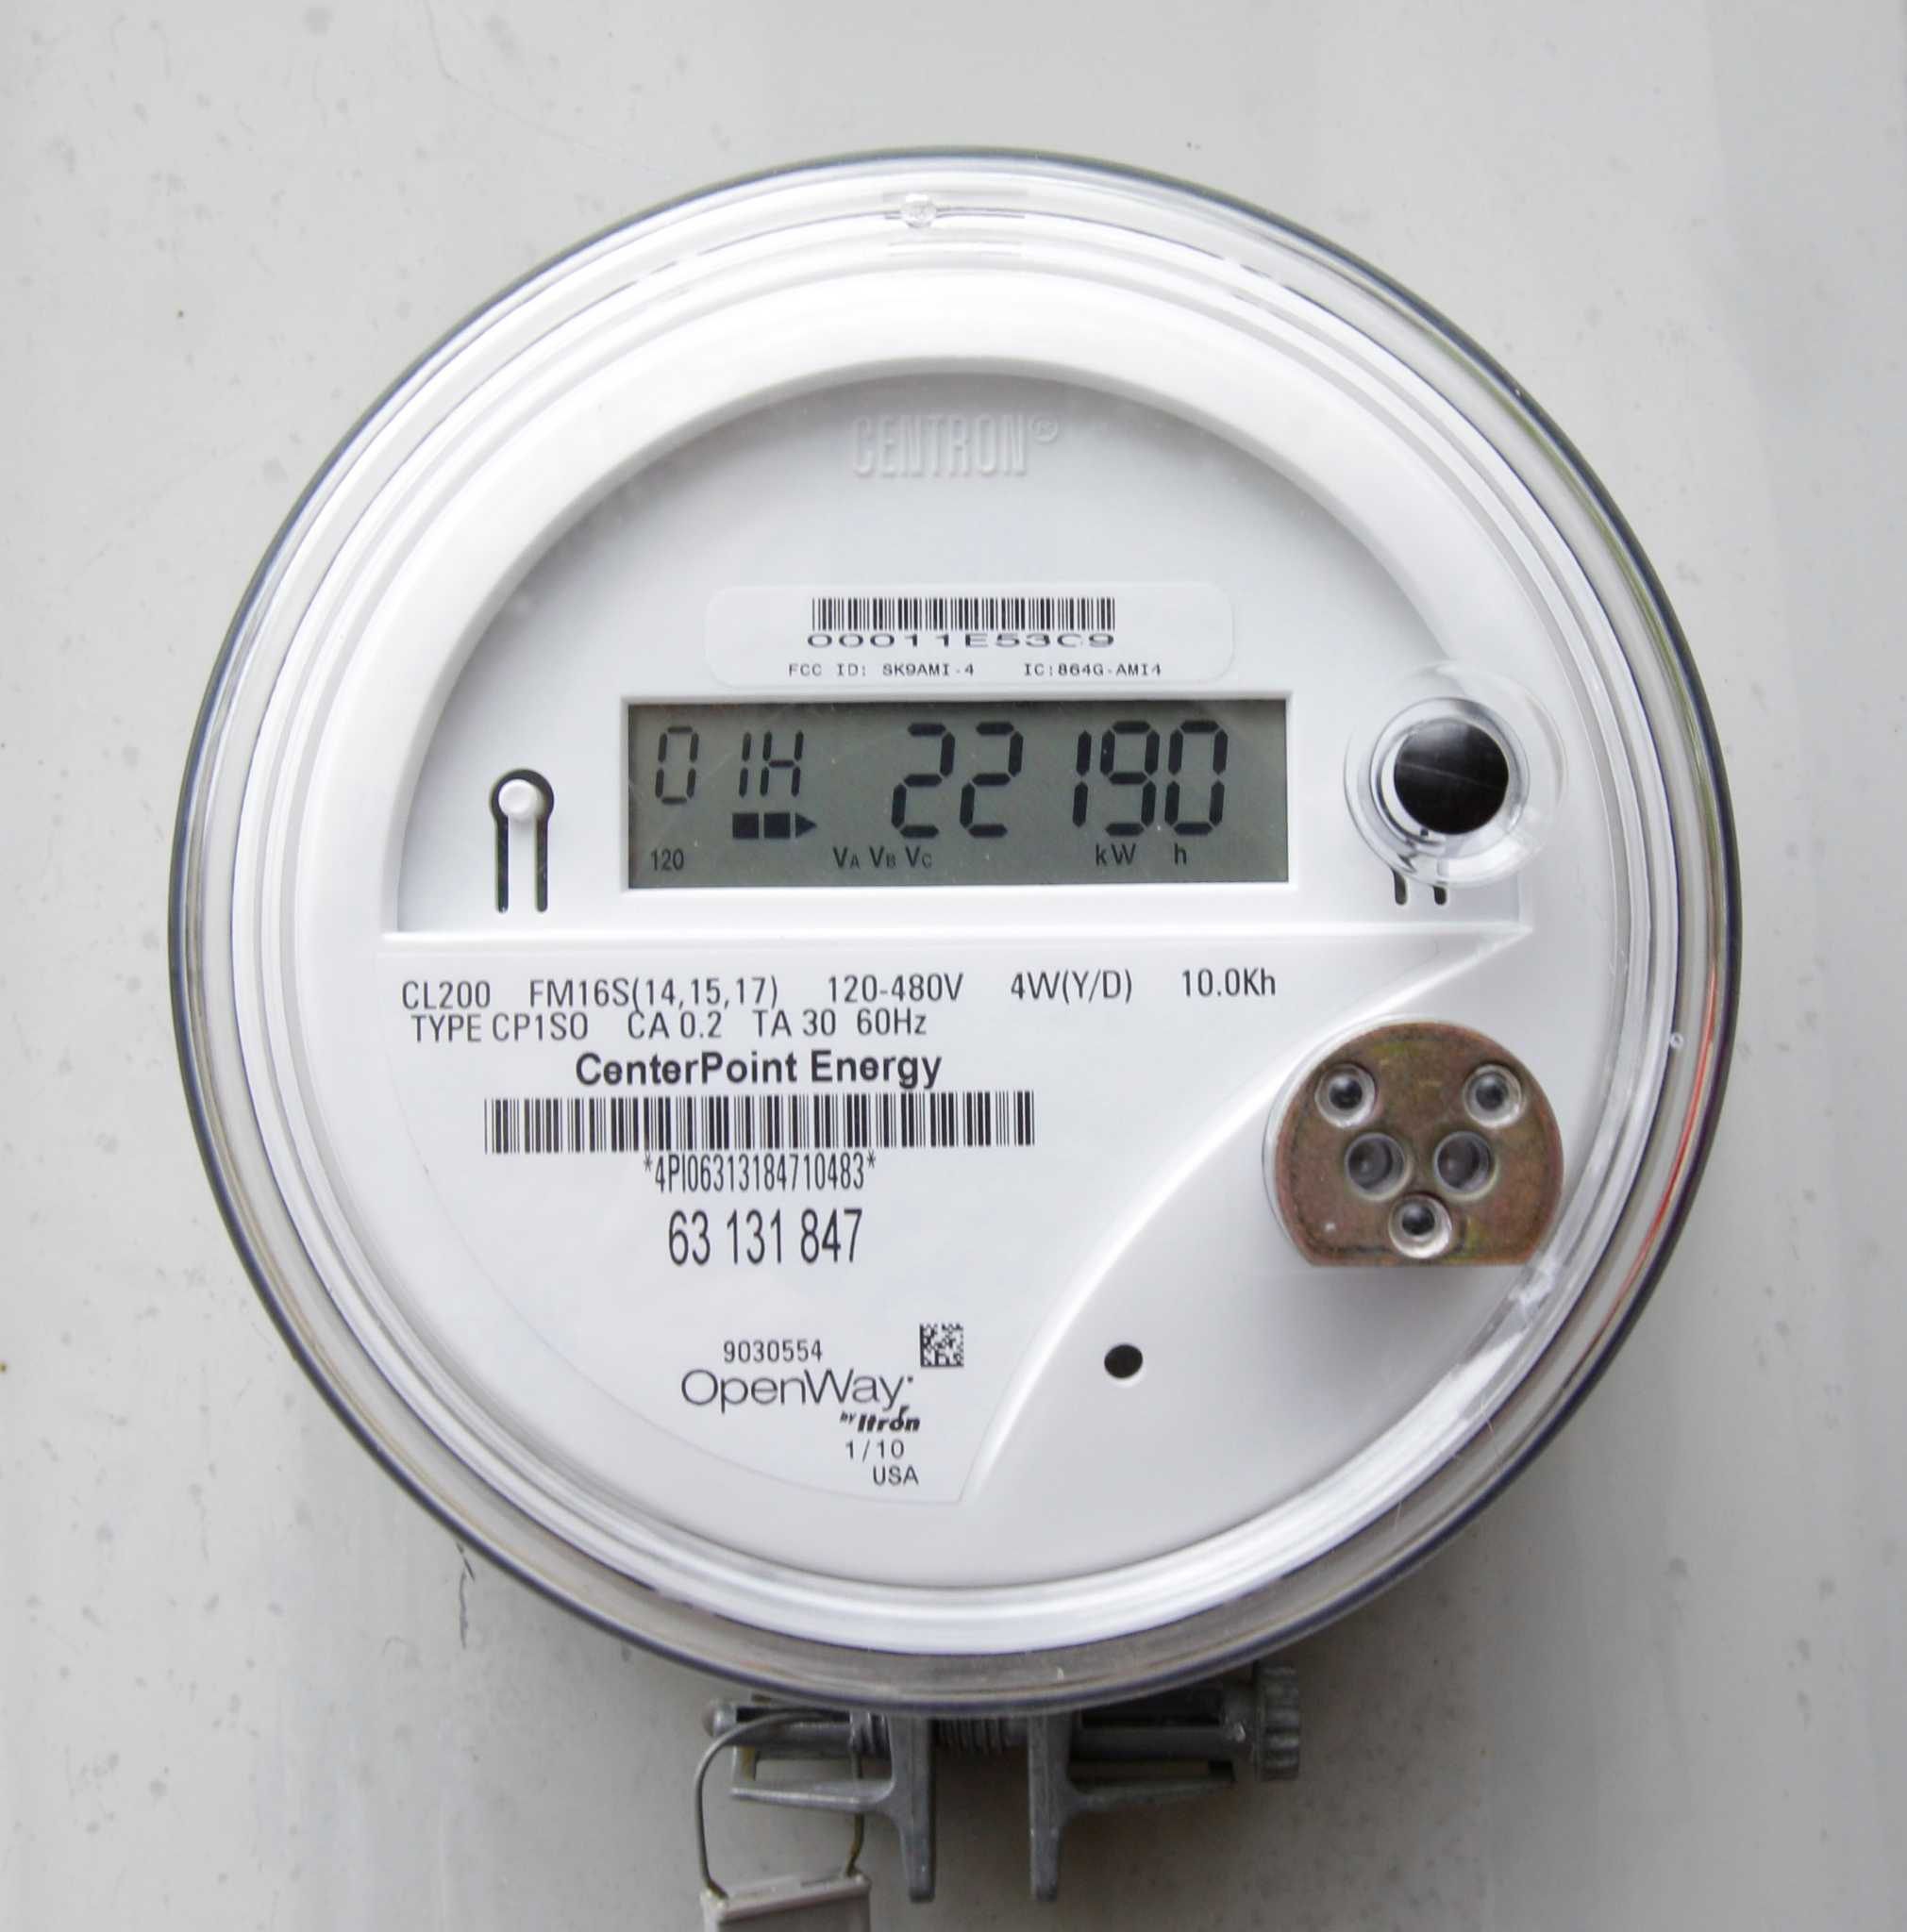 Center Point Power Meter : Panelists say it s smart to use new electric meters